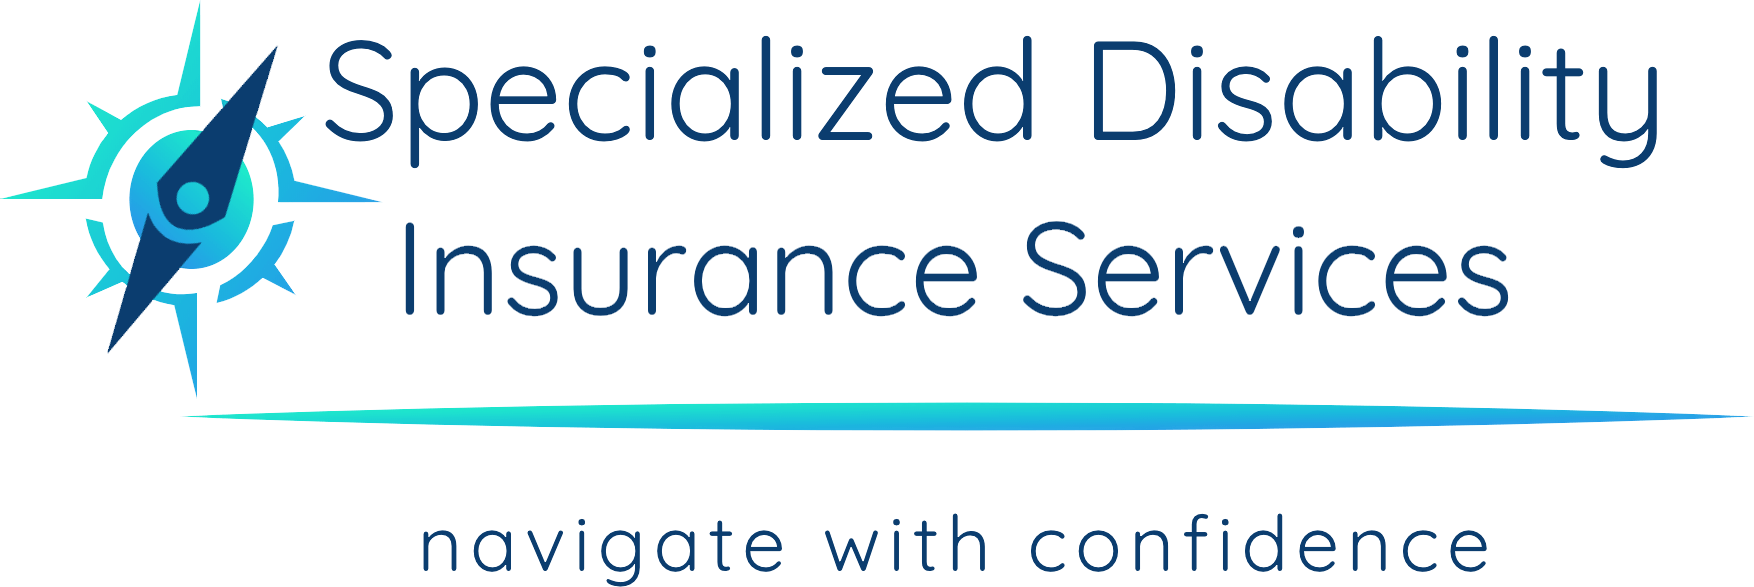 Specialized Disability Insurance Services